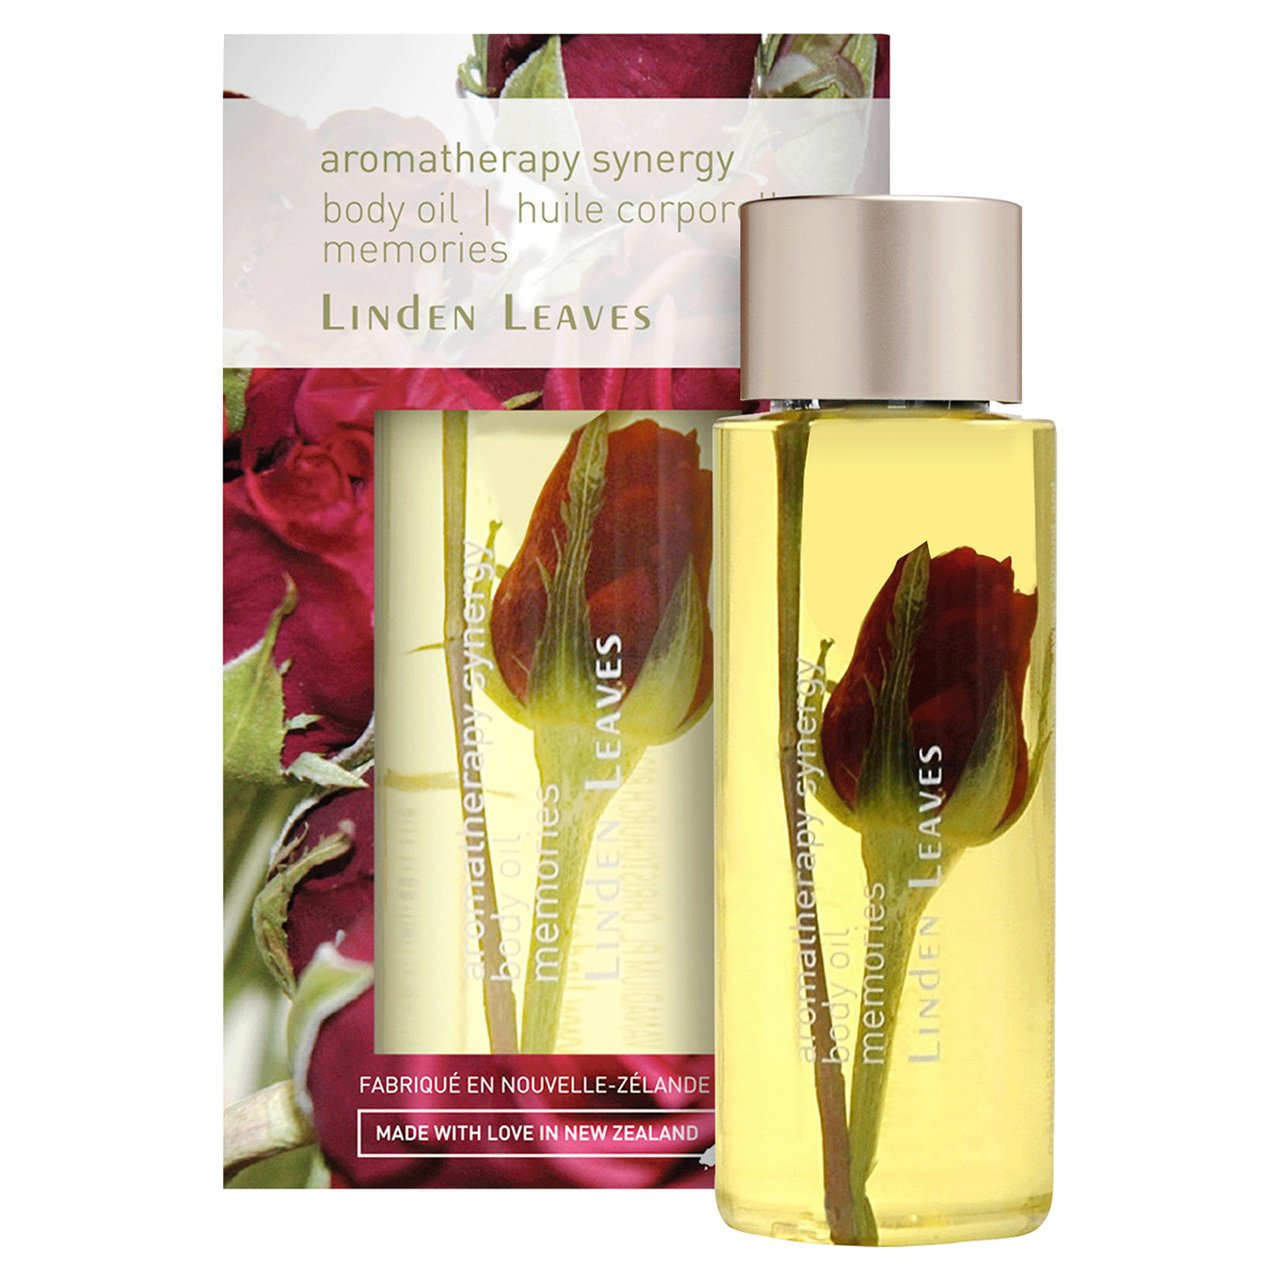 Linden Leaves Aromatherapy Synergy Body Oil Memories 250ml